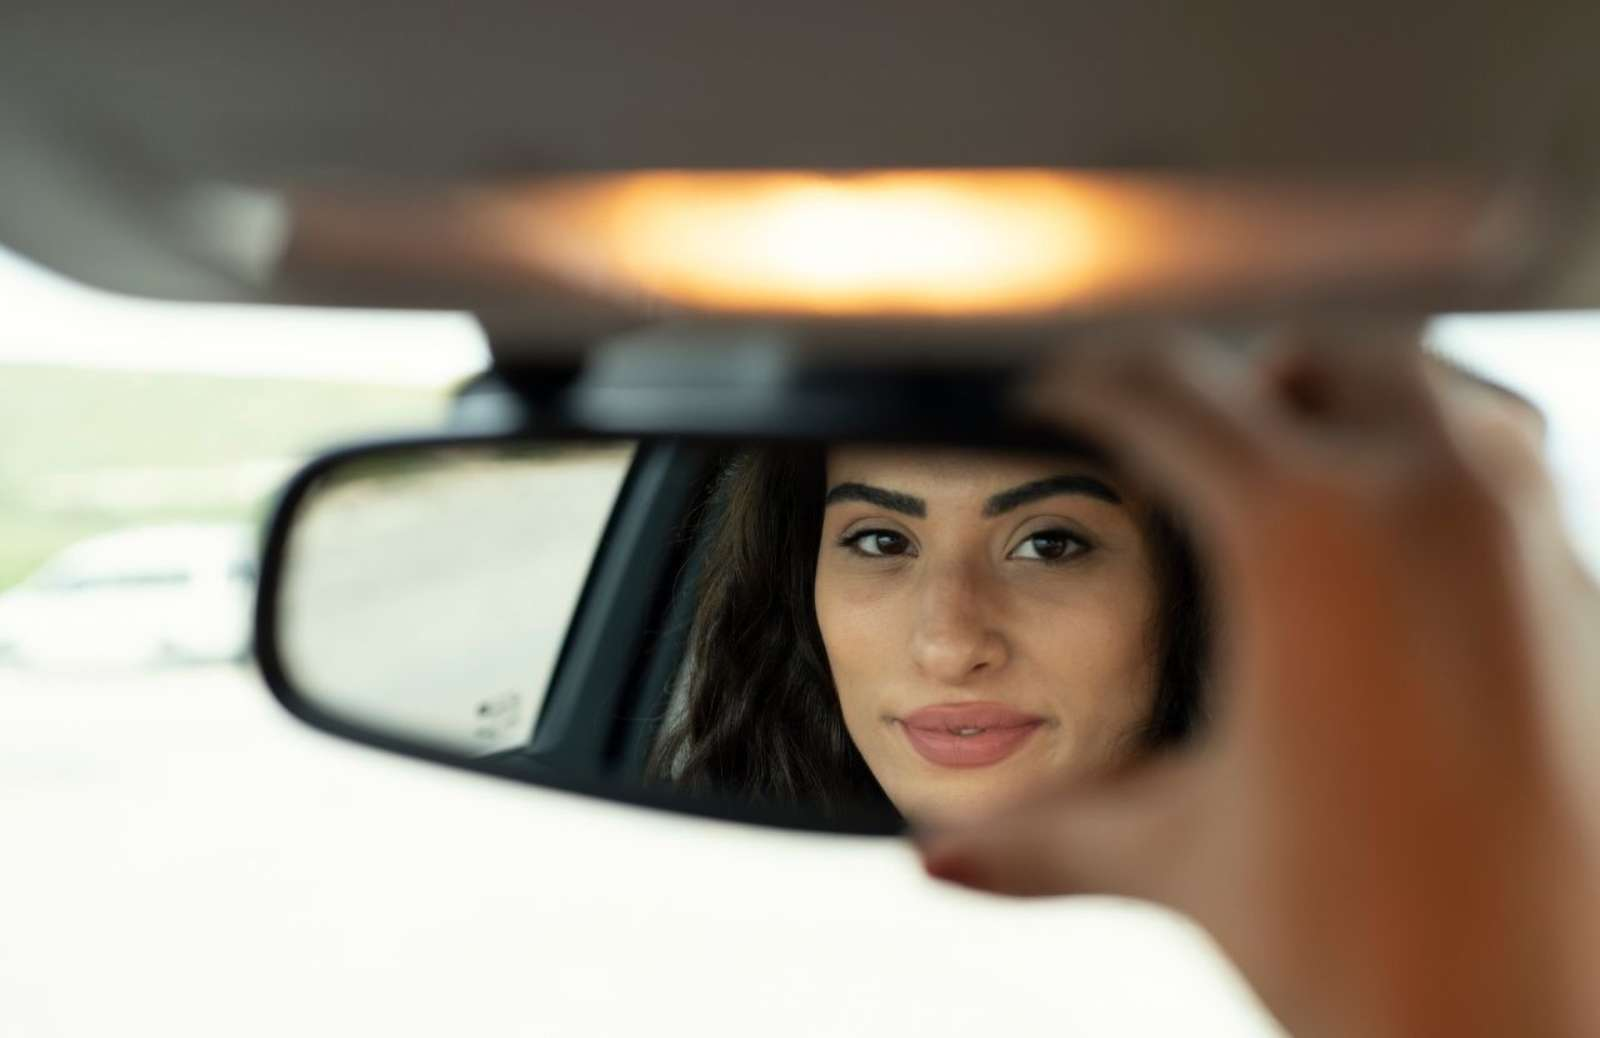 Woman smiling to herself as she adjusts rearview mirror in car